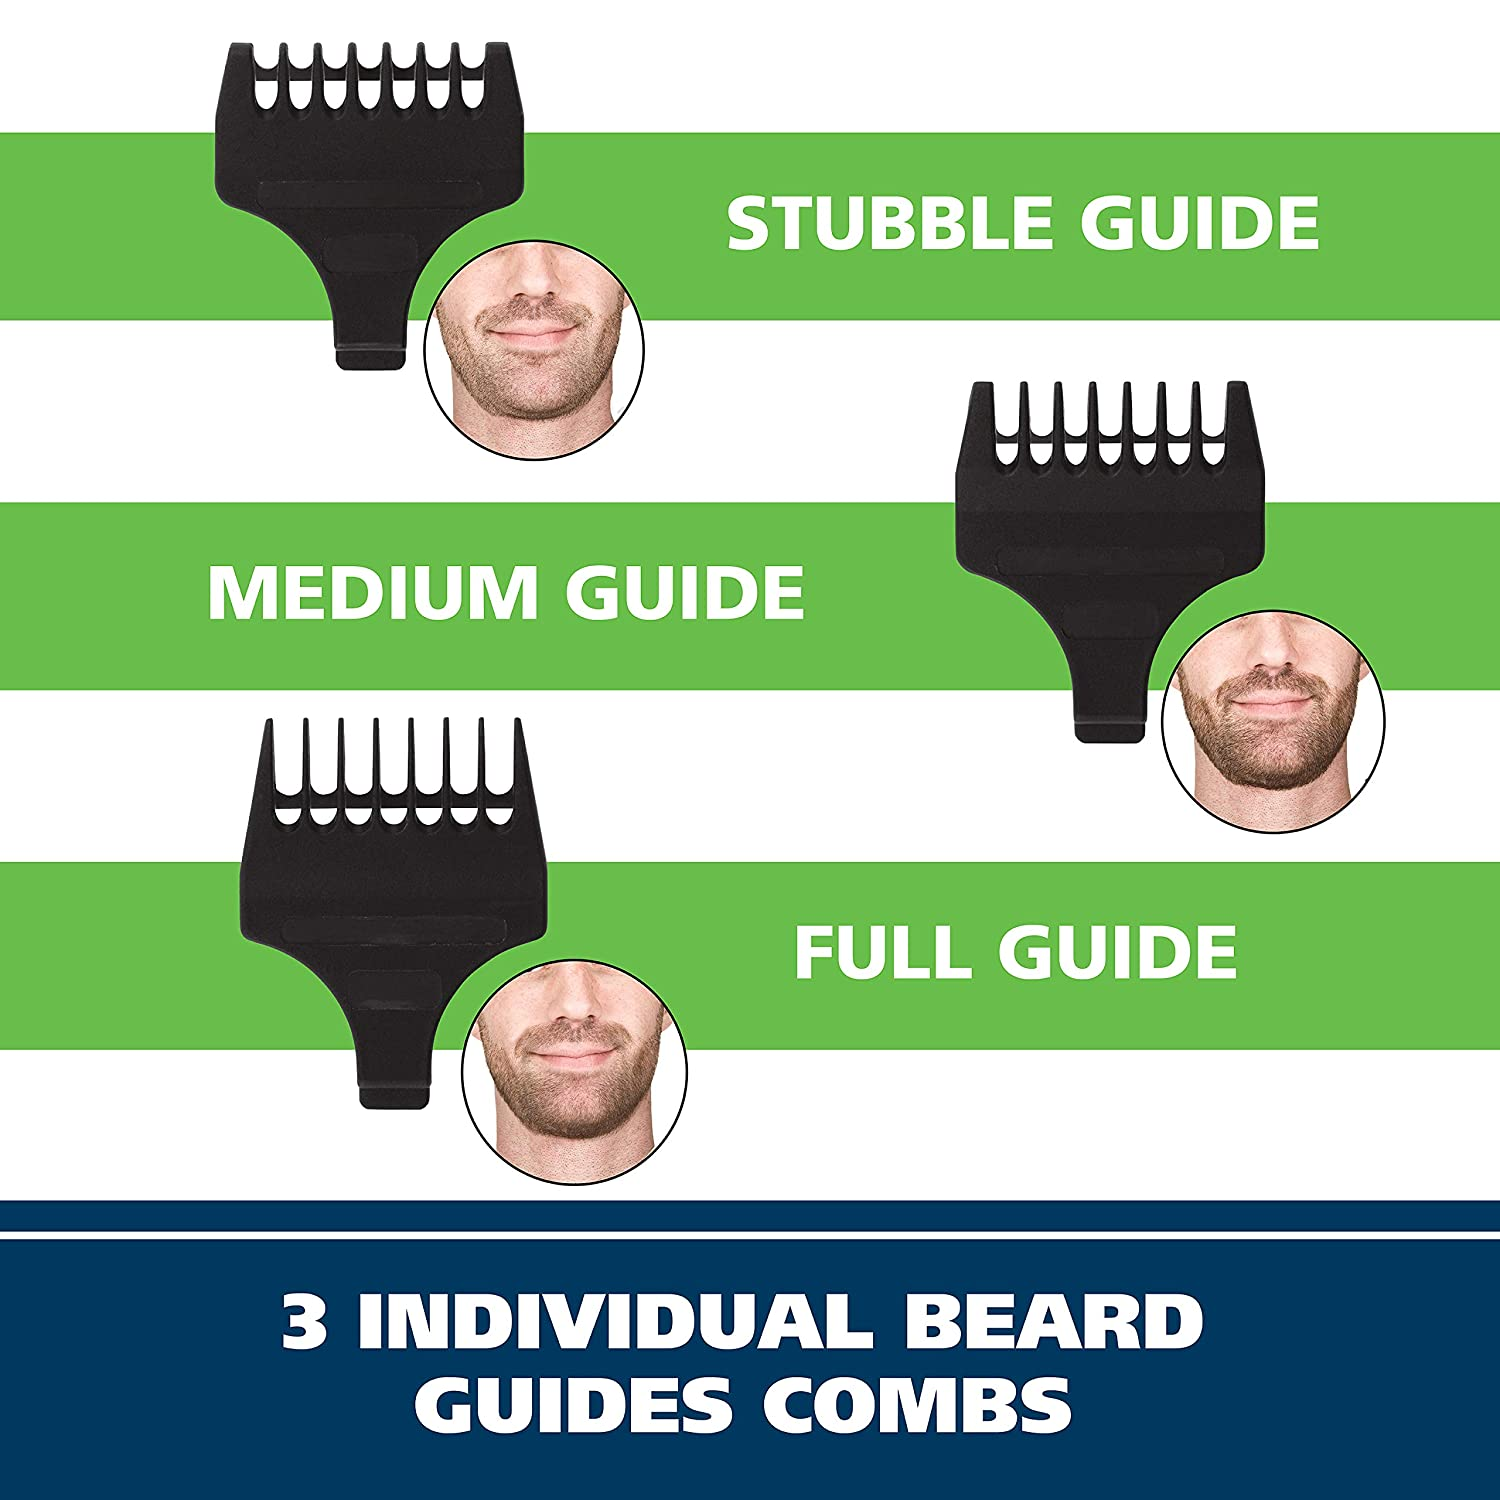 Cordless Hair Clipper & Beard Trimmer Kit, Rechargeable Professional Grooming Kit for Men